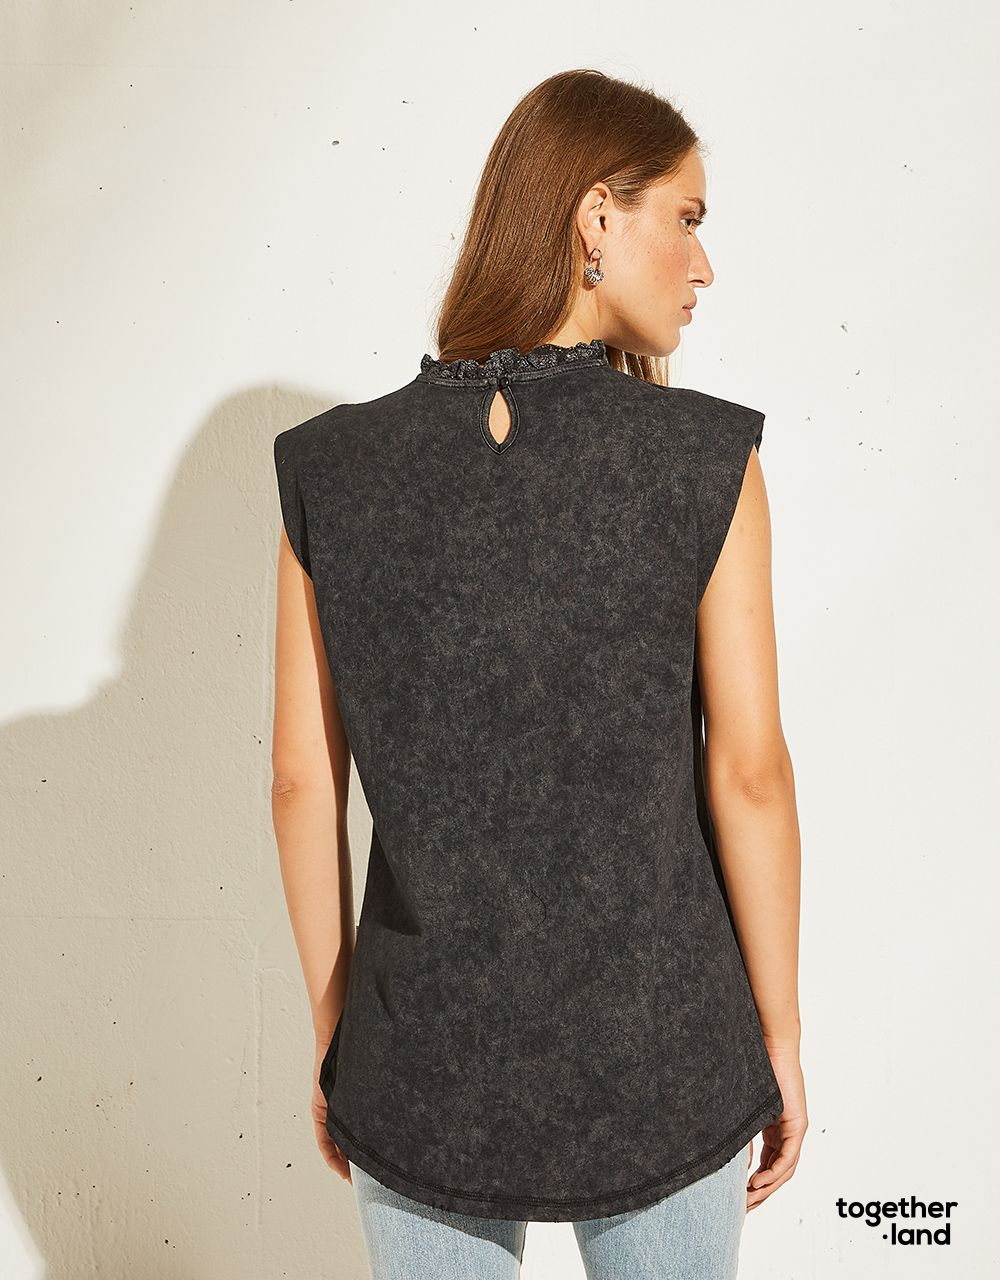 BLOUSE WITH EMBOSSED PRINT - TOGETHERLAND